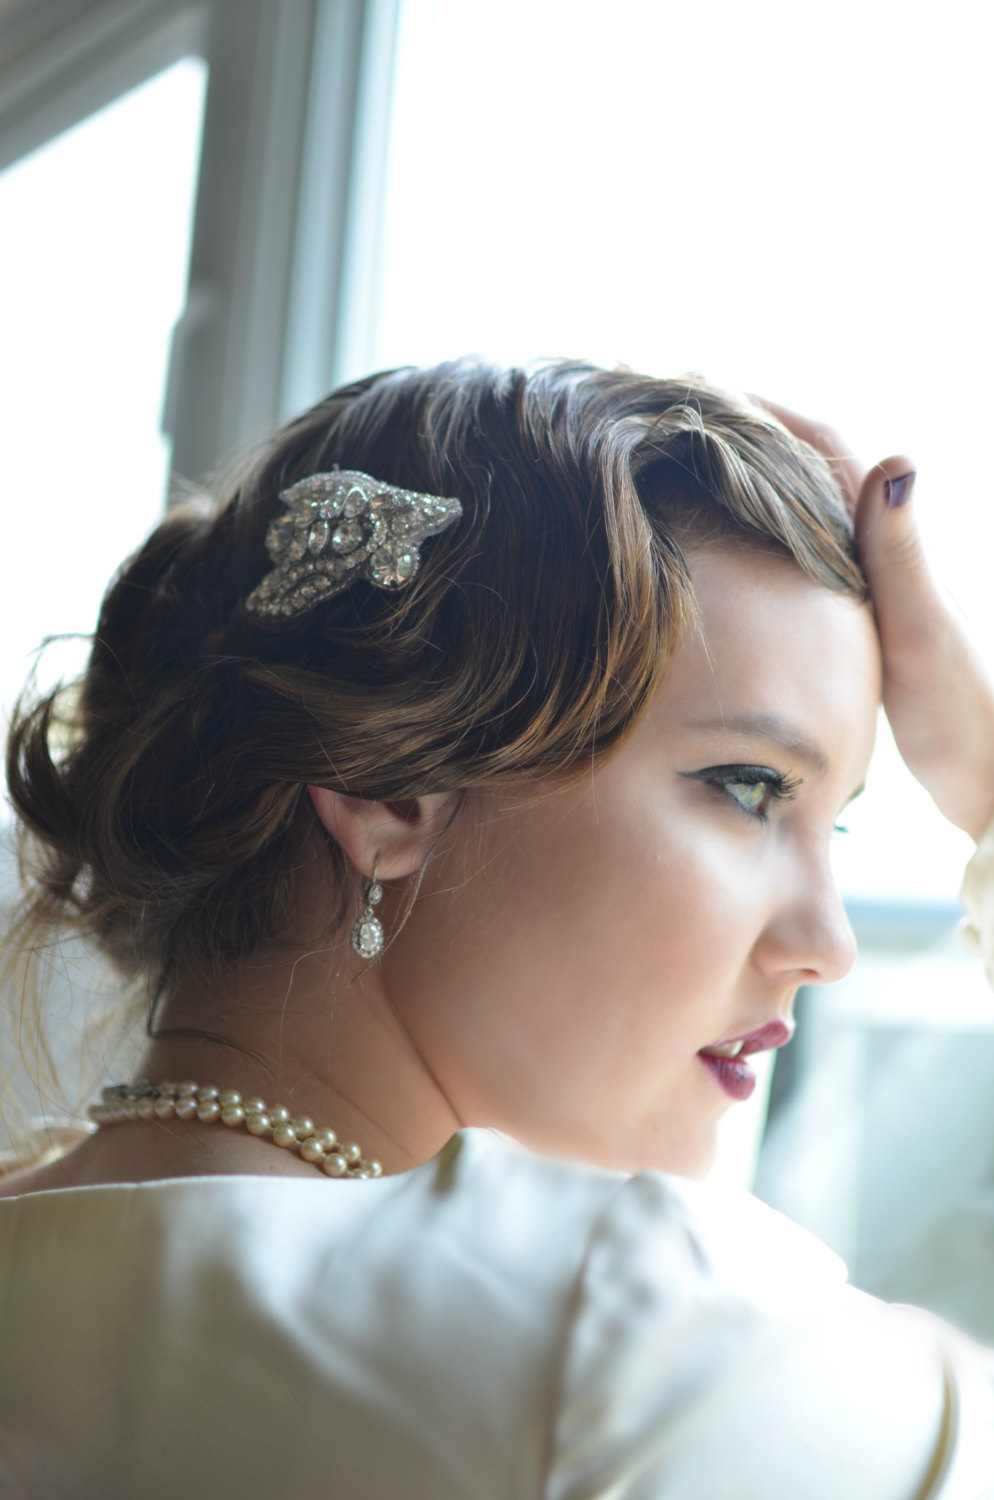 vintage wedding accessory ideas - hair comb